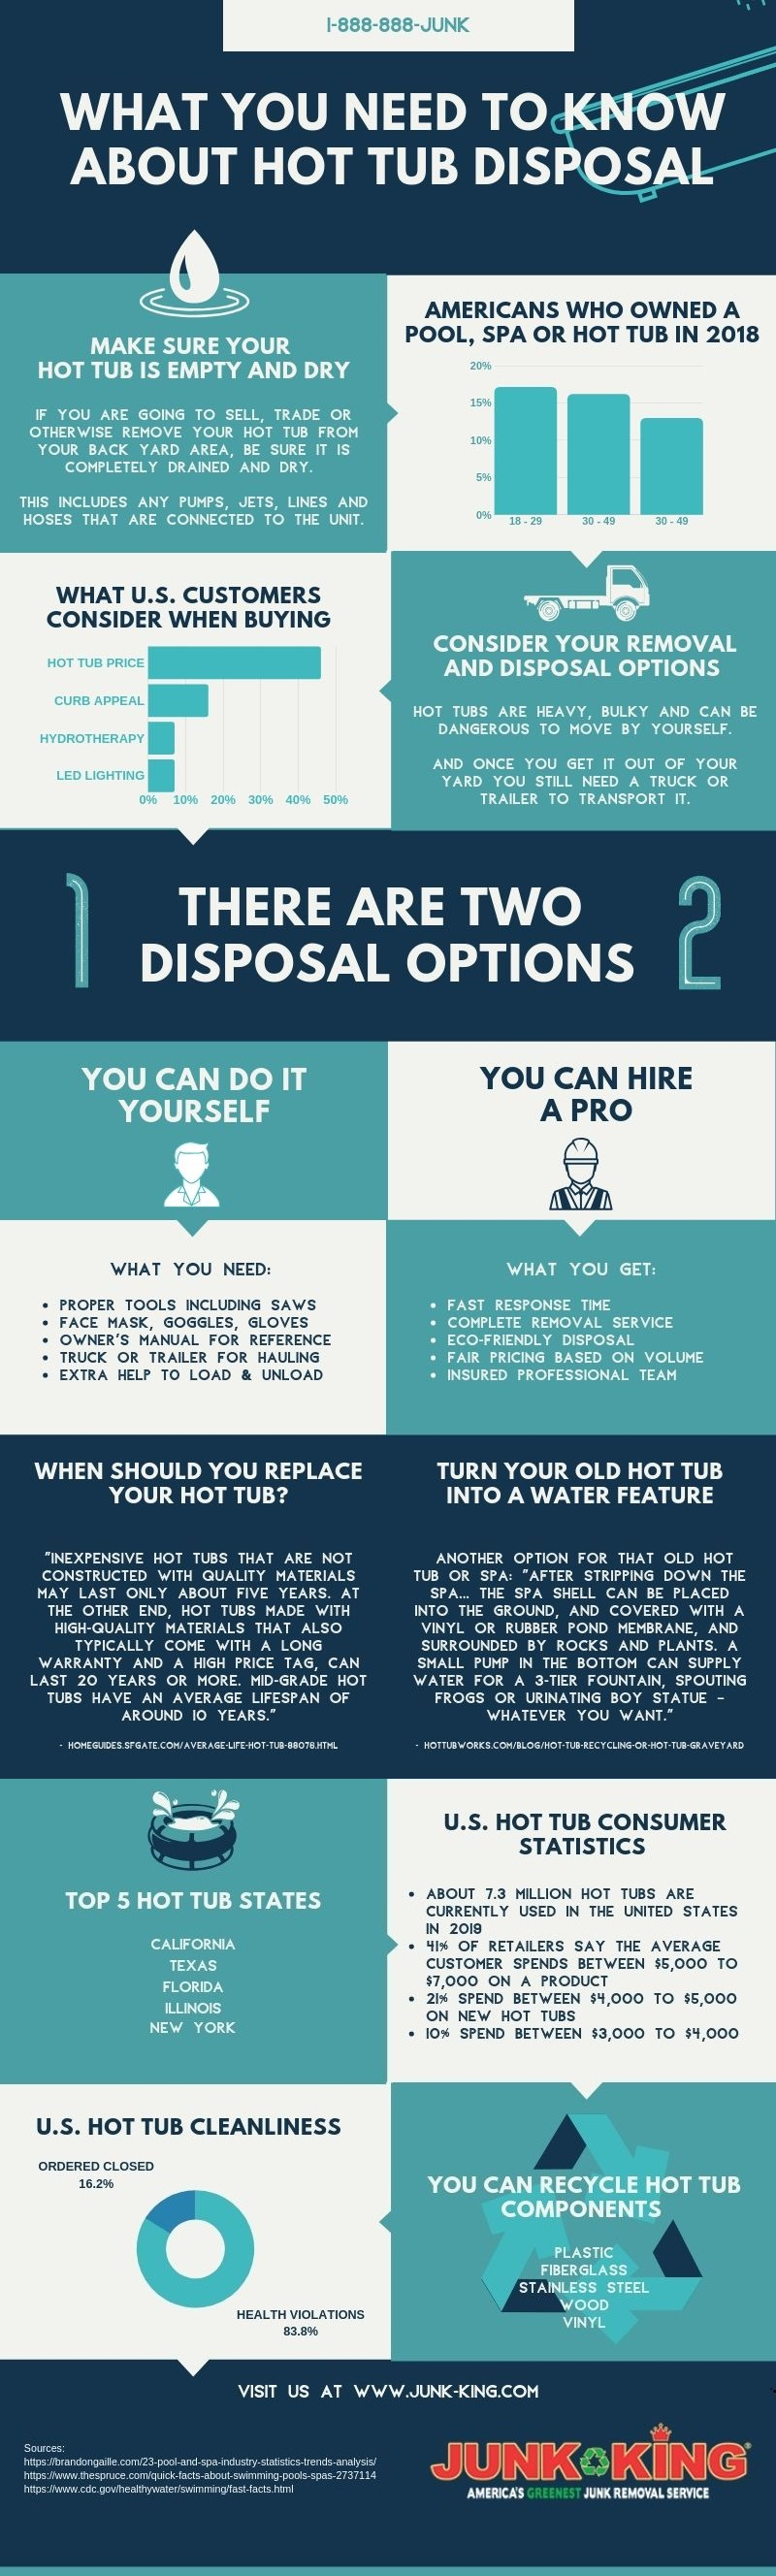 what you need to know about hot tub disposal infographic